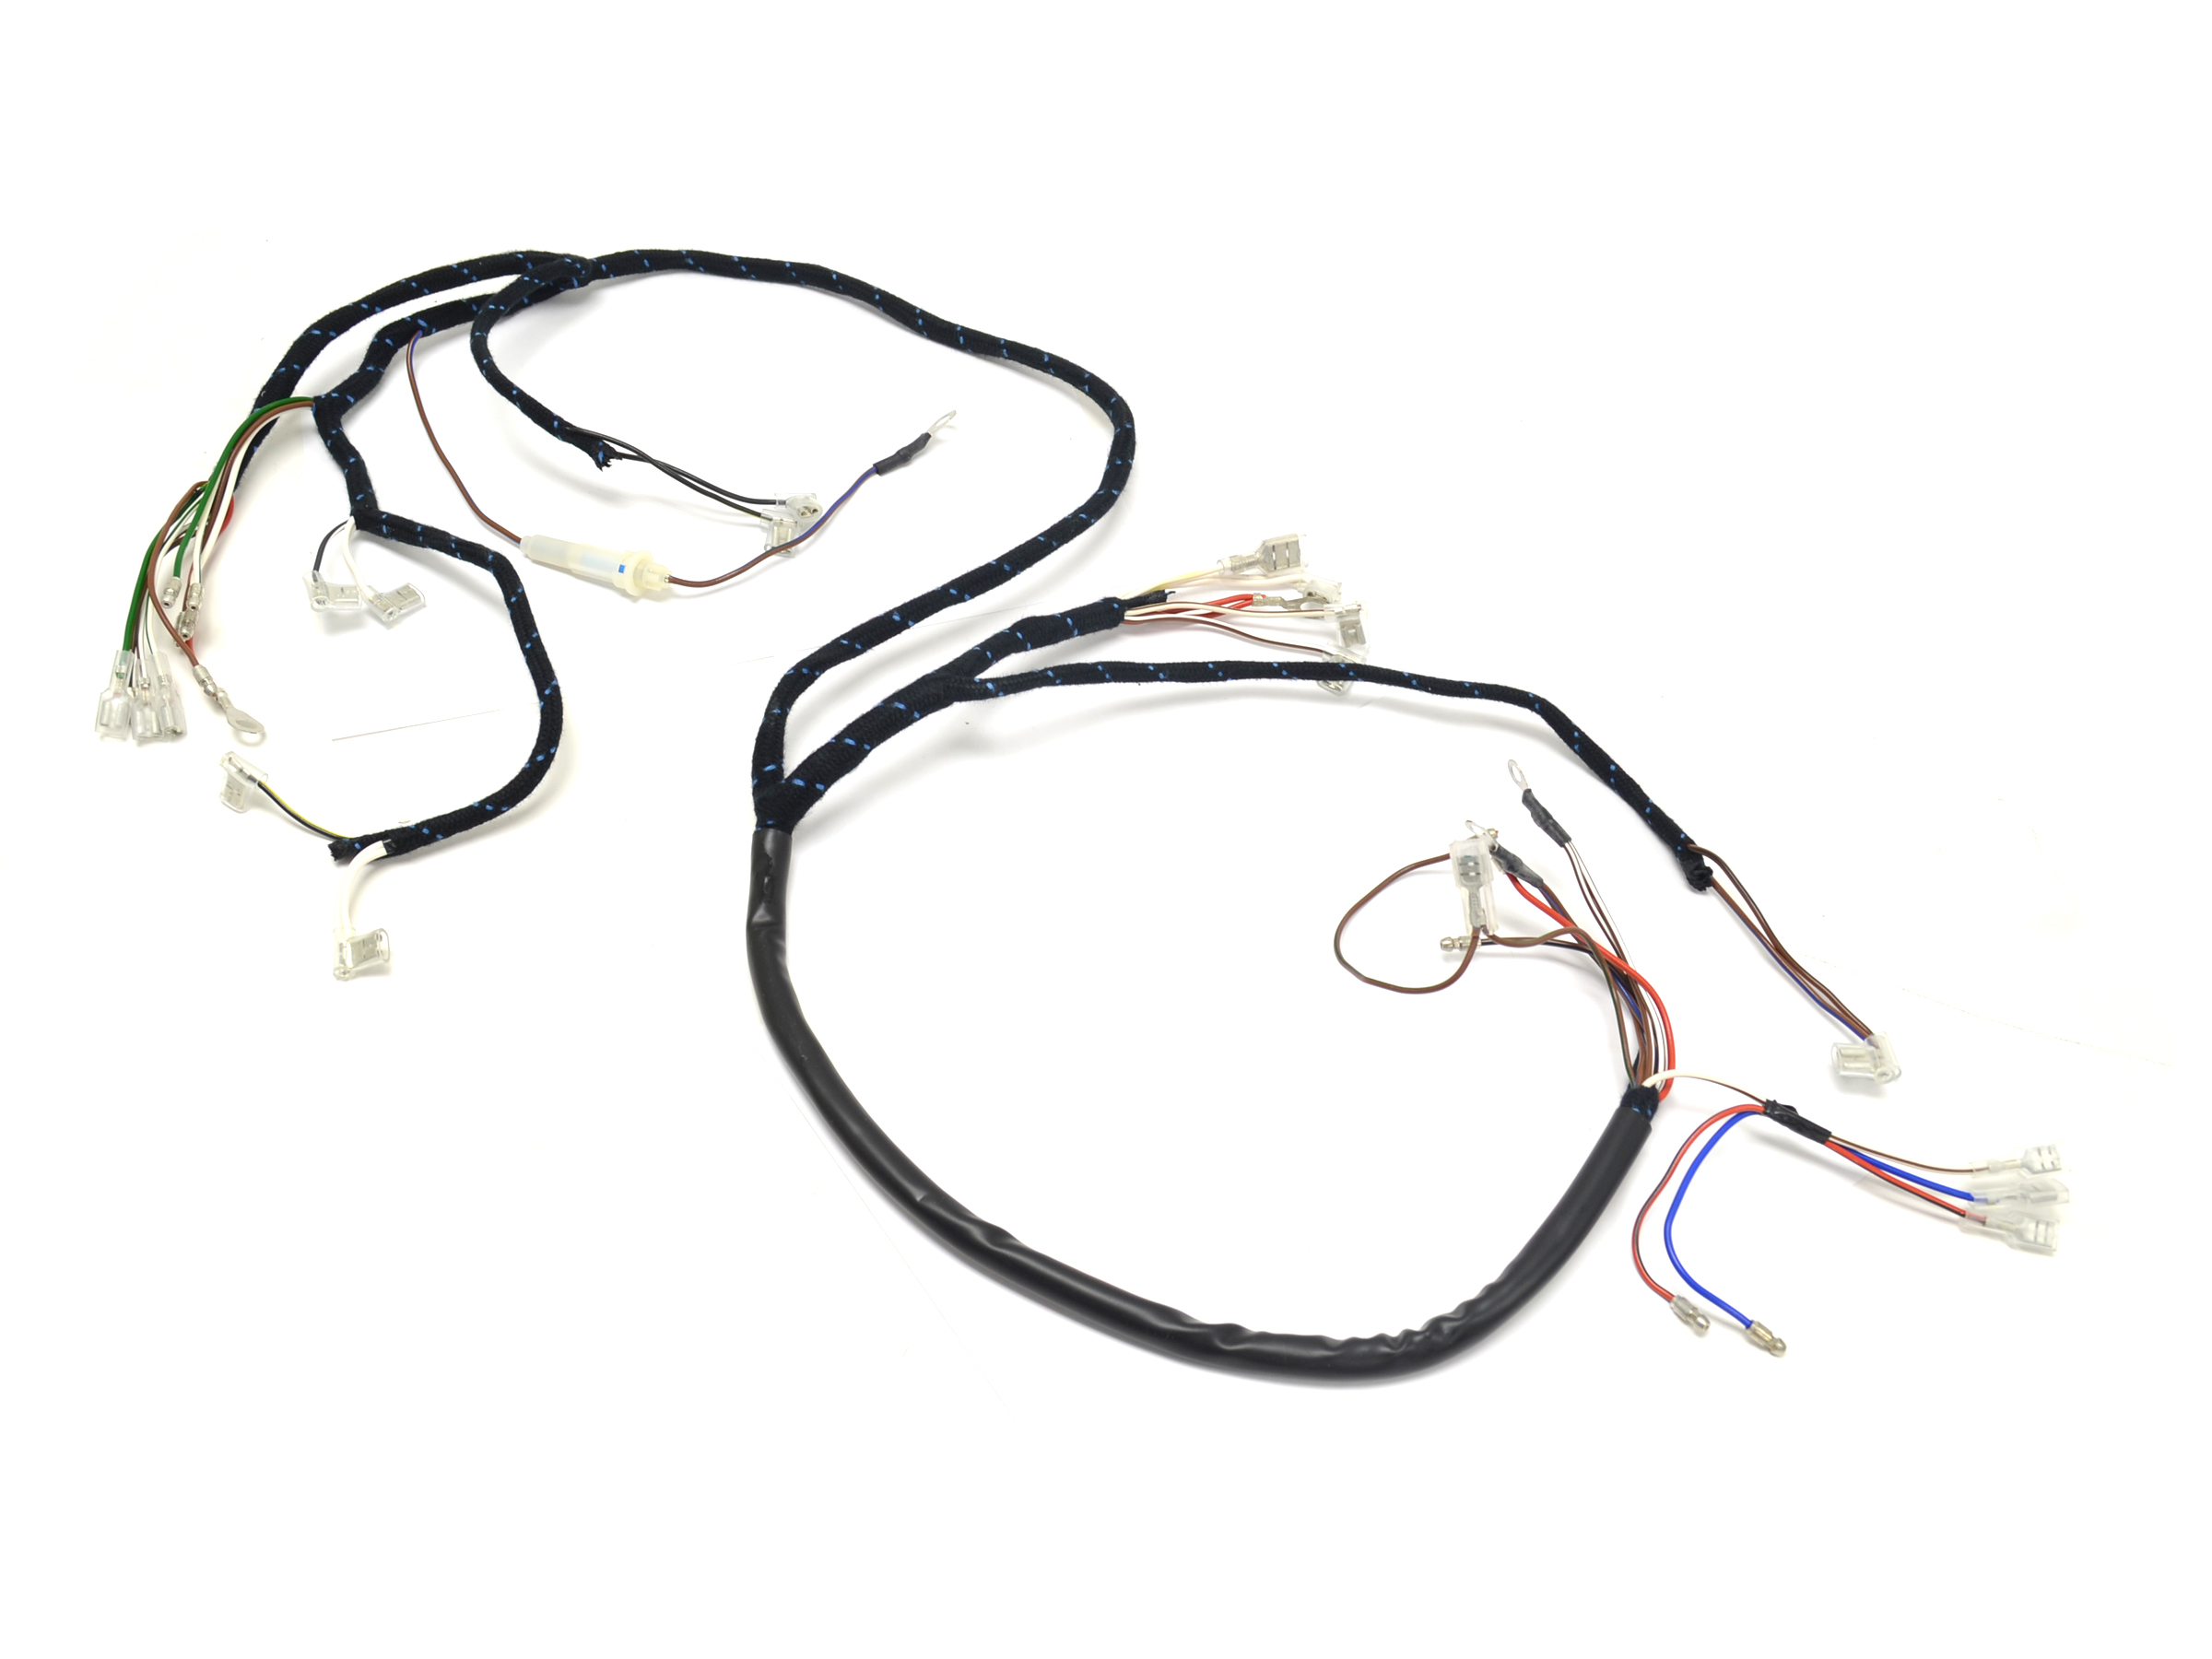 Bsa 69 A50 A65 English Made 12 Volt Wiring Harness